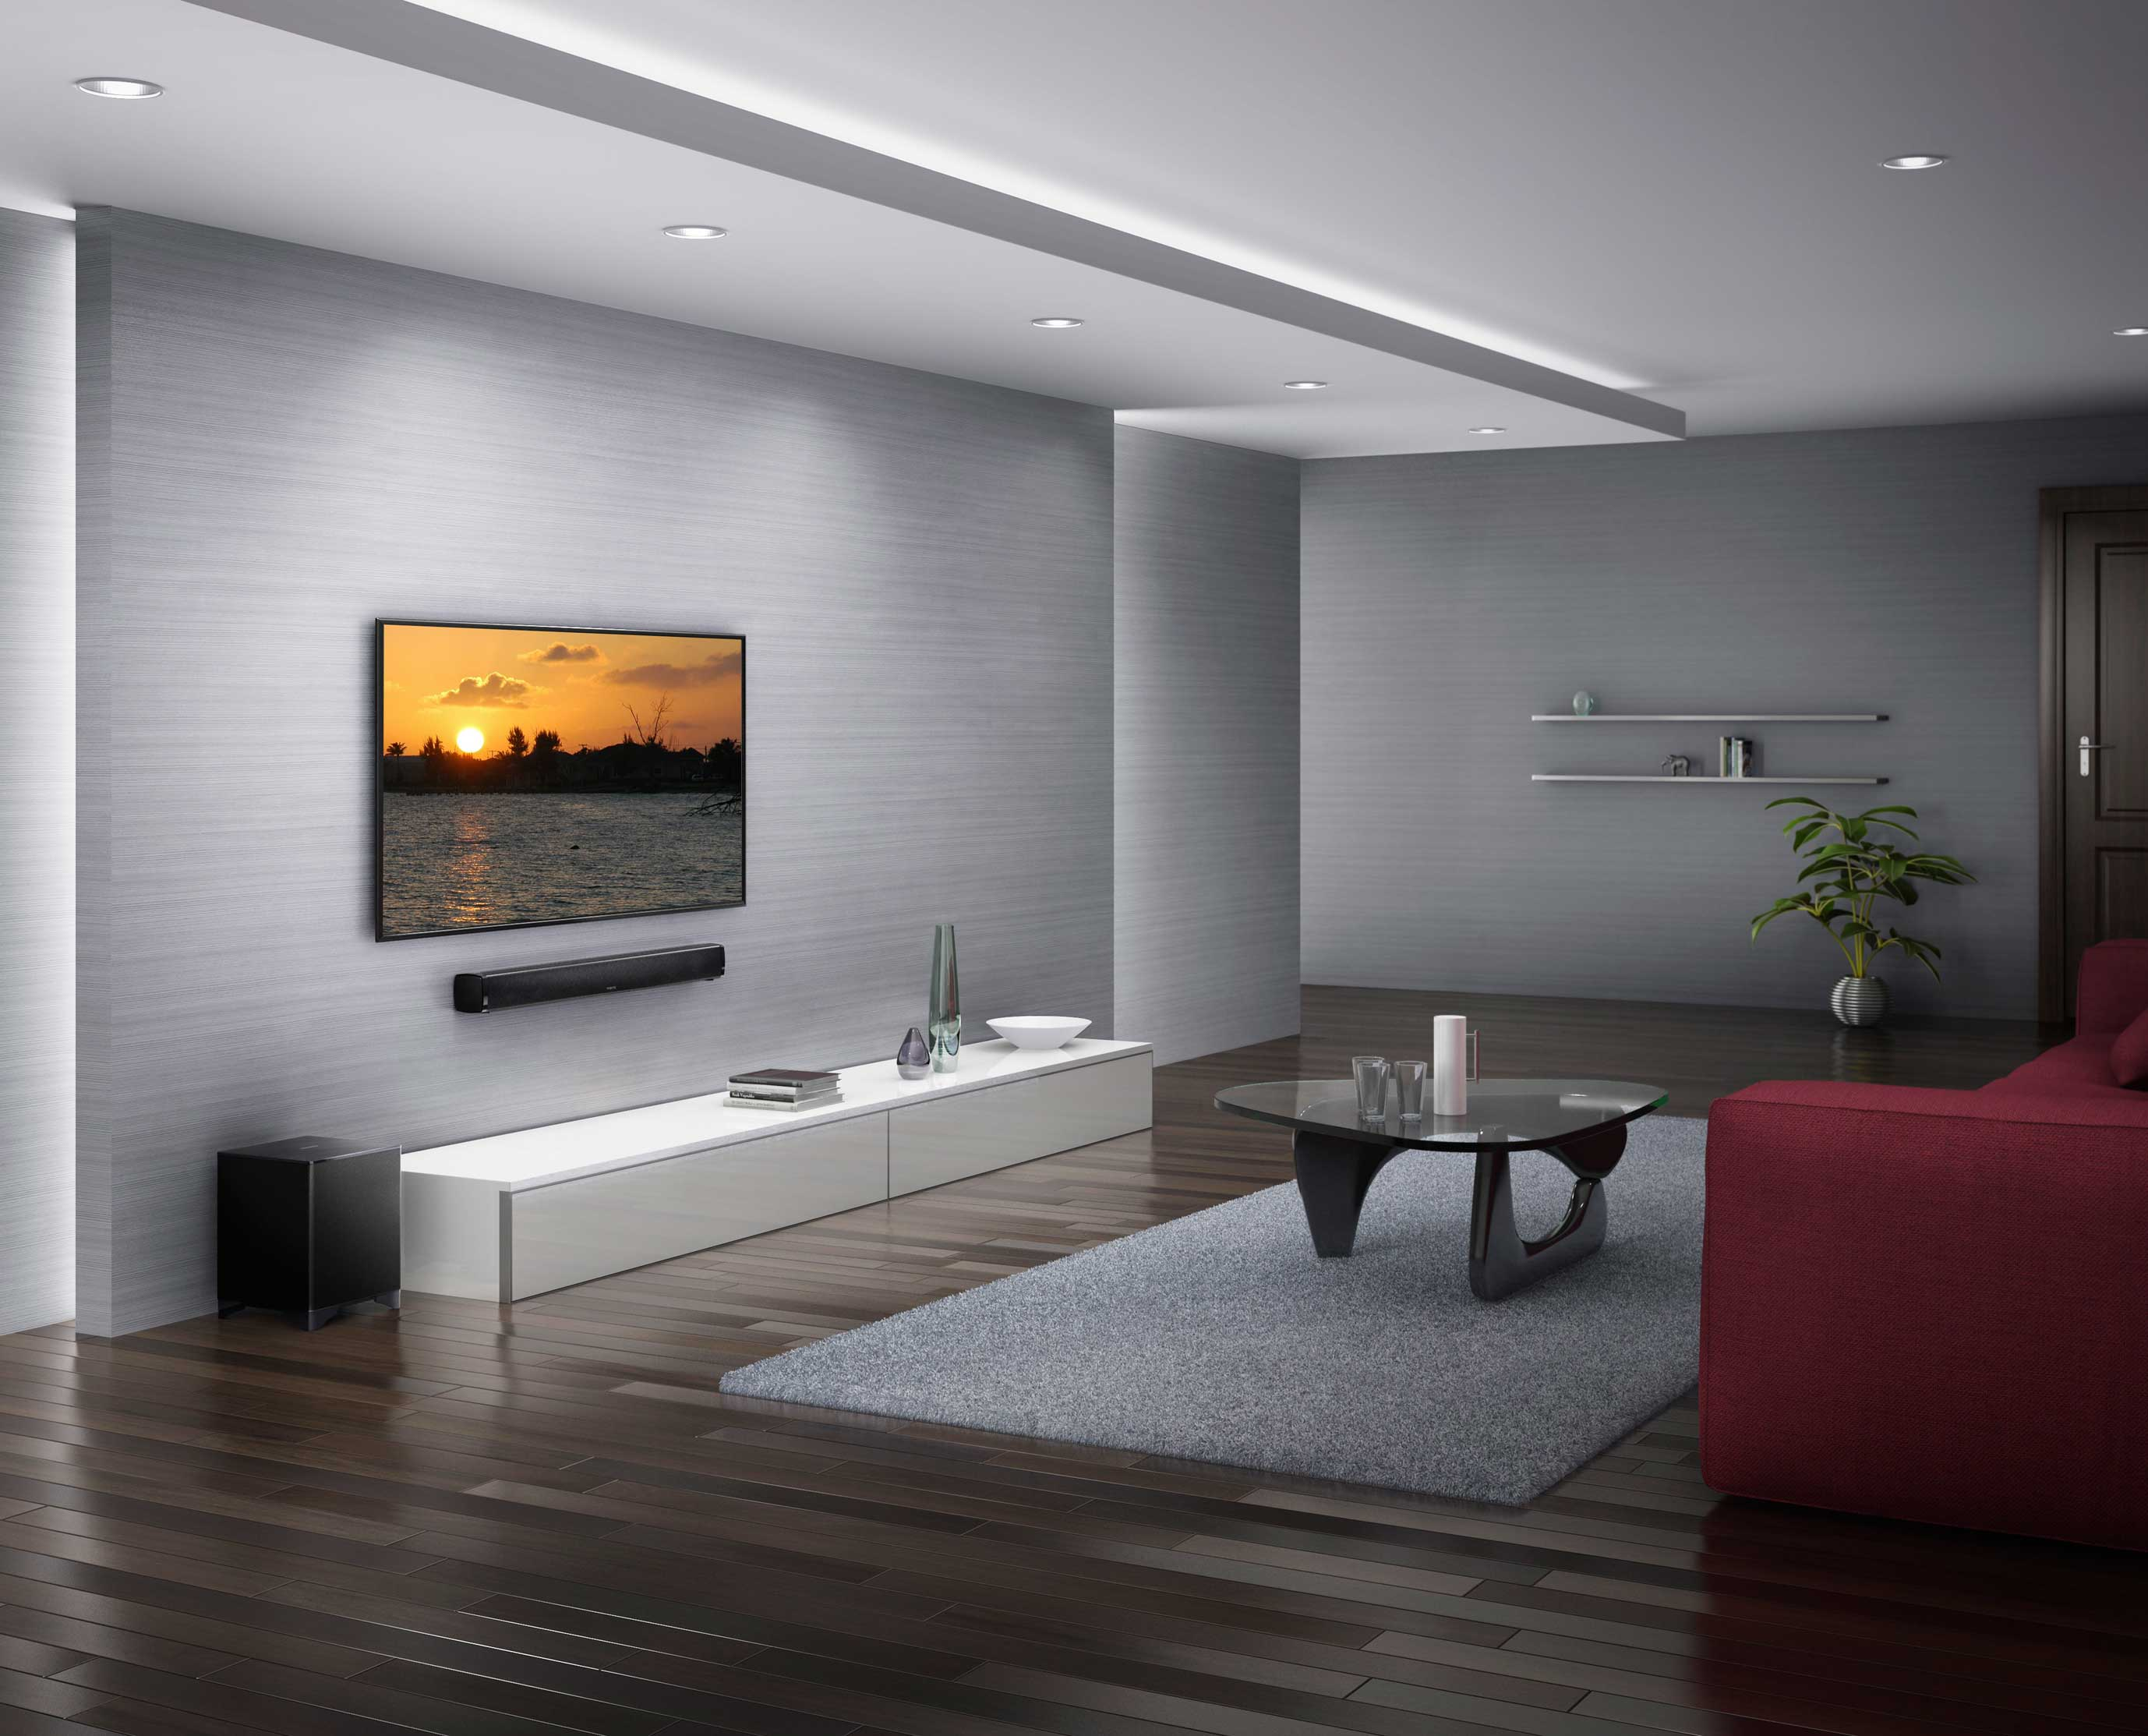 Onkyo aims to improve poor tv sound with soundbar for Wohnzimmer tv wand